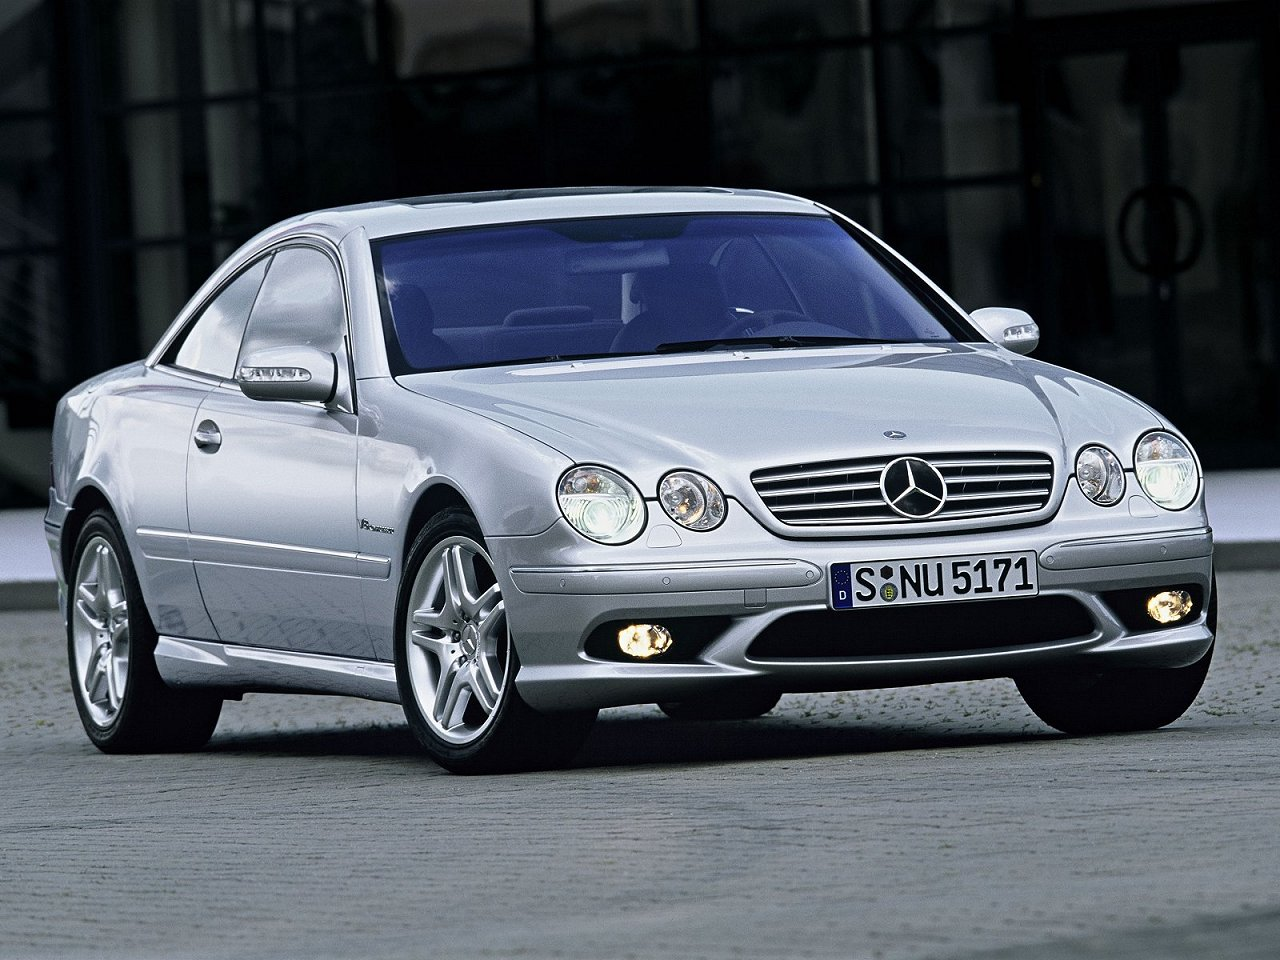 2004 mercedes benz cl class pictures cargurus for 2004 mercedes benz e320 review